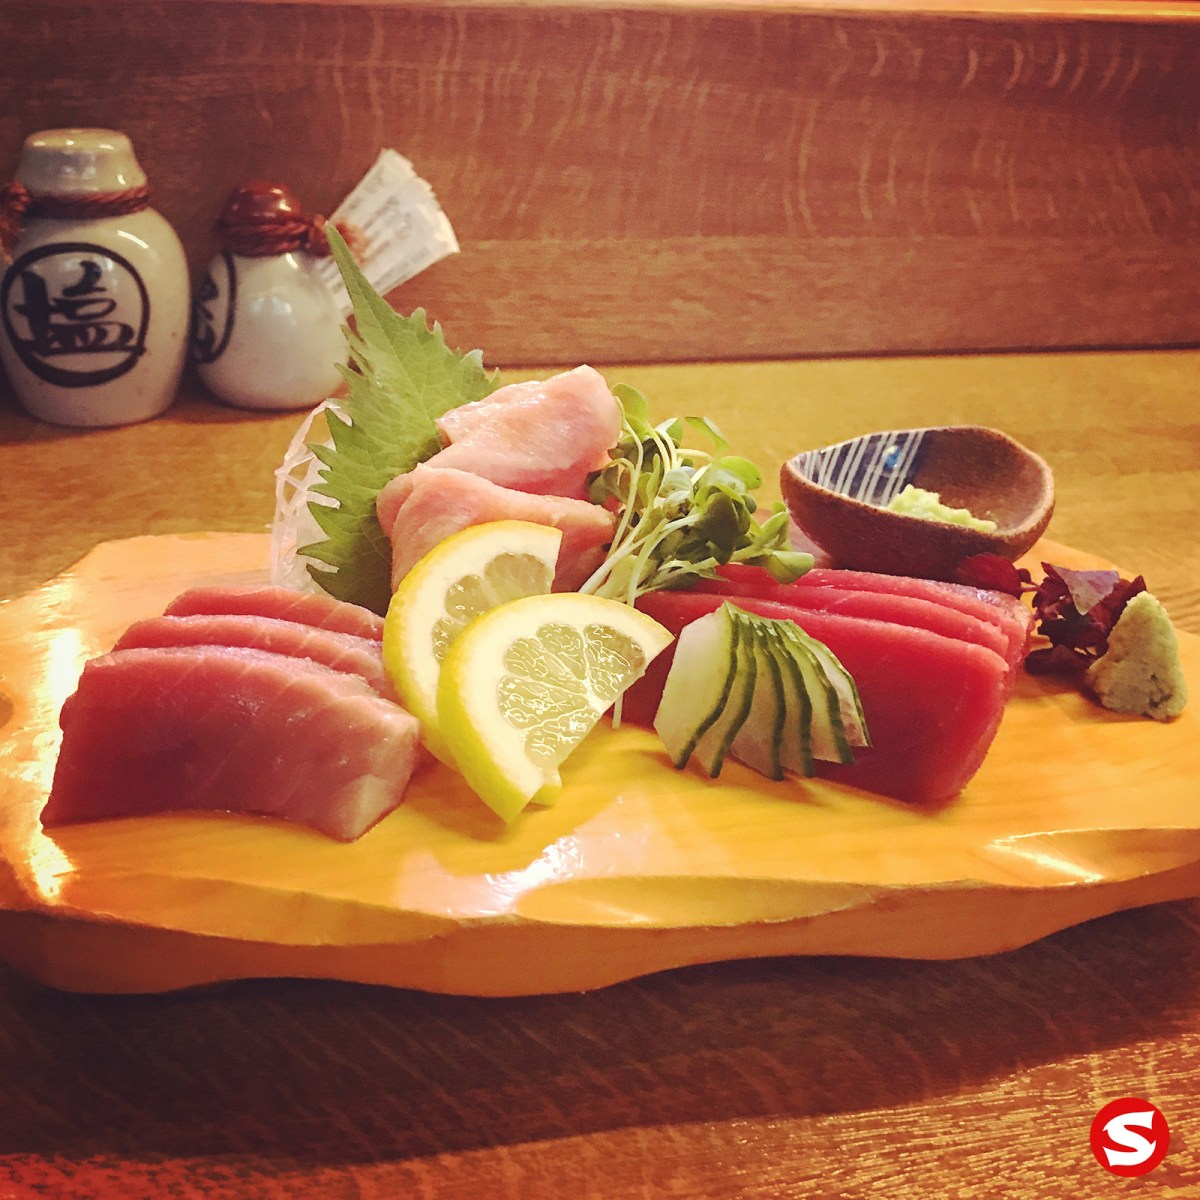 chu toro (bluefin medium fatty tuna belly), o toro (bluefin fatty tuna belly), maguro (bluefin tuna back) sashimi